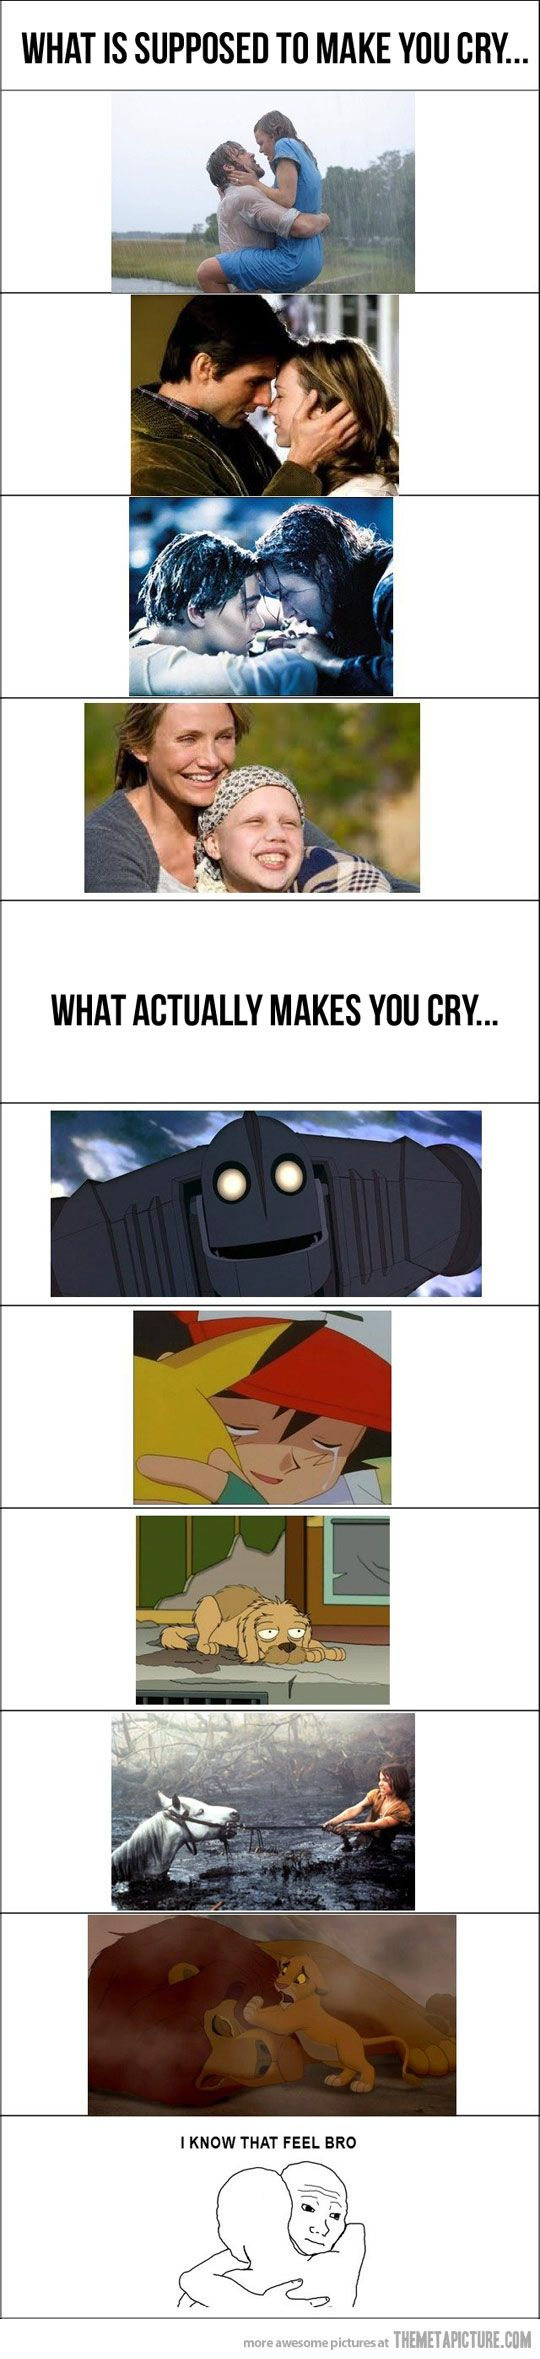 Can I say it all made me cry ?